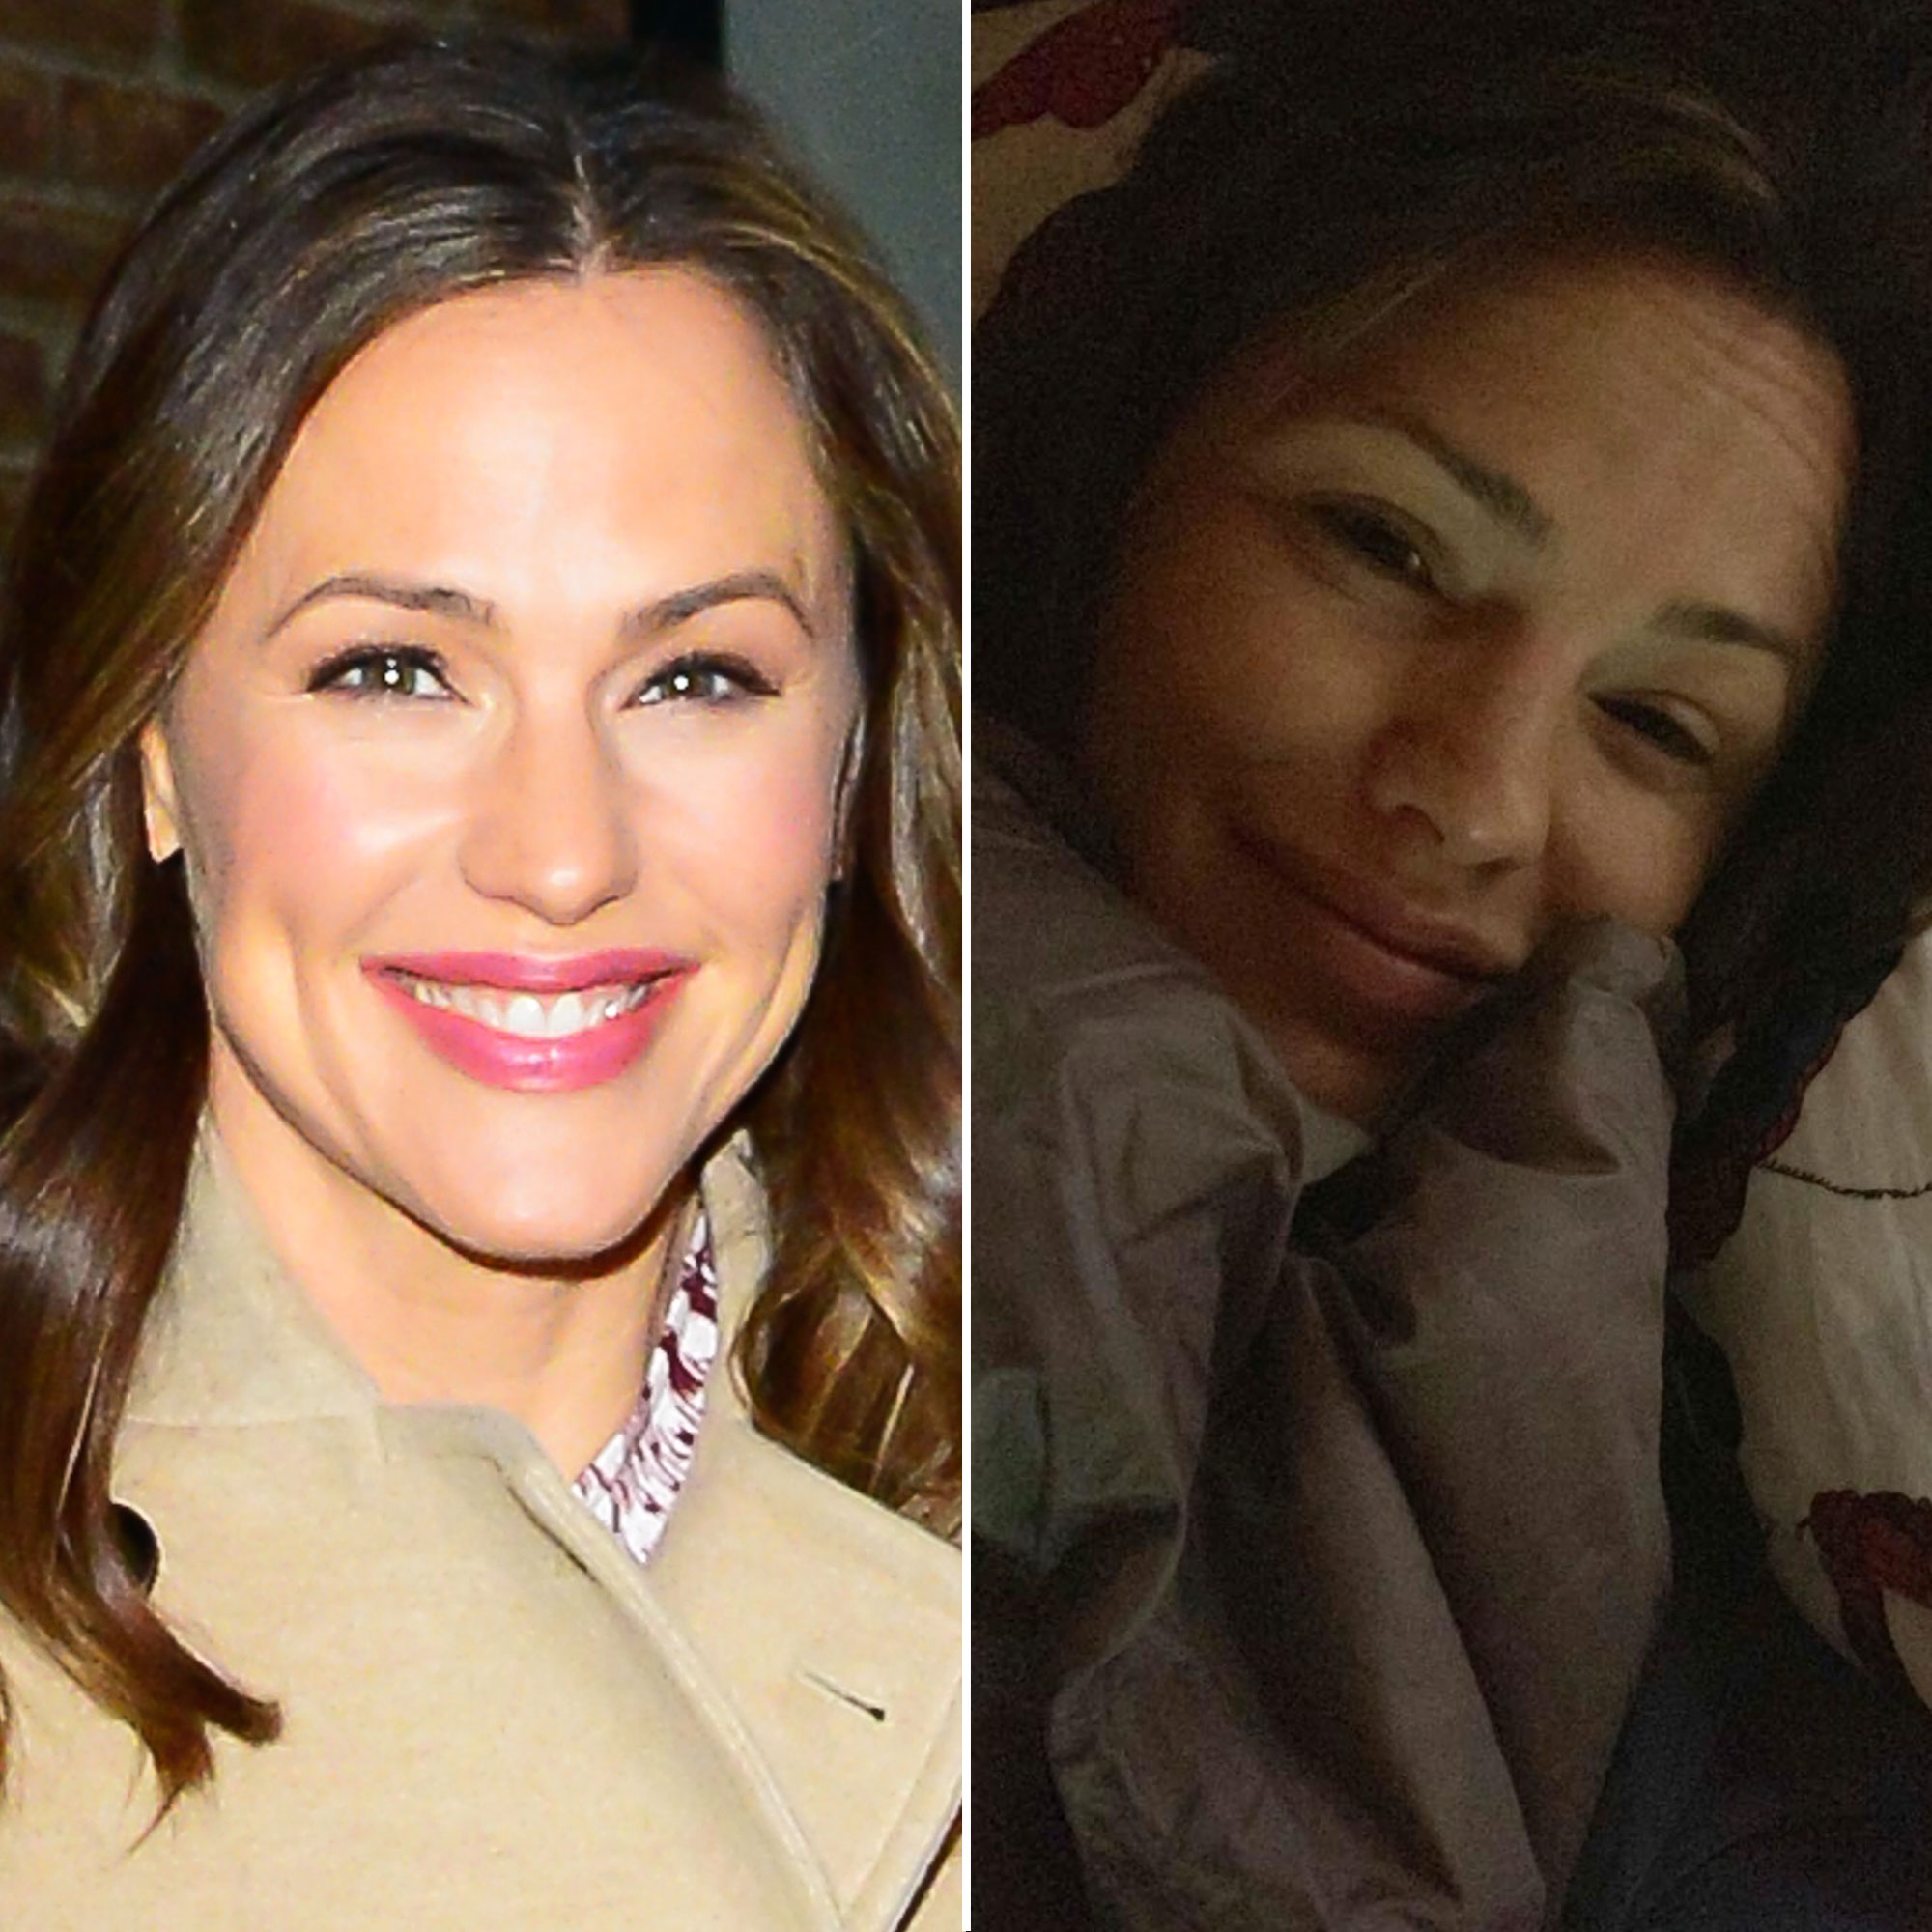 Jennifer Garner makeup free selfie - The 13 Going on 30 star shared an #IWokeUpLikeThis makeup-free selfie on April 13, 2019, looking fresh-faced and absolutely beautiful cuddled up in bed.